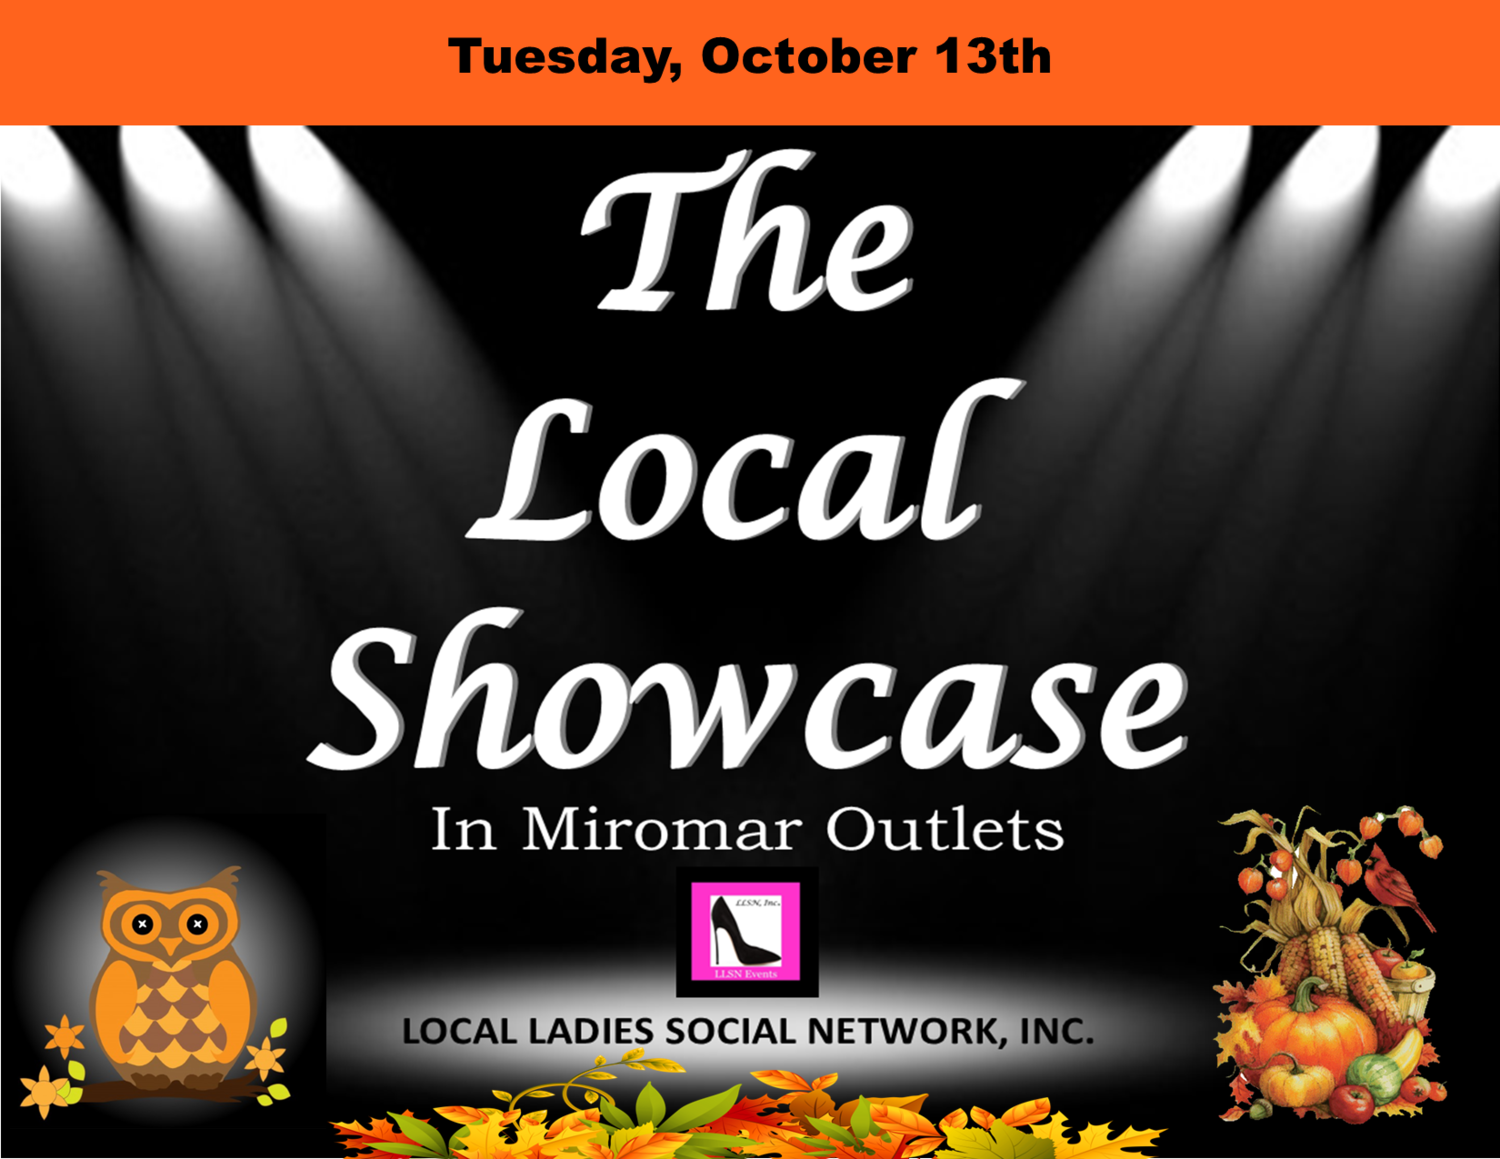 Tuesday, October 13th, 11am-7pm.